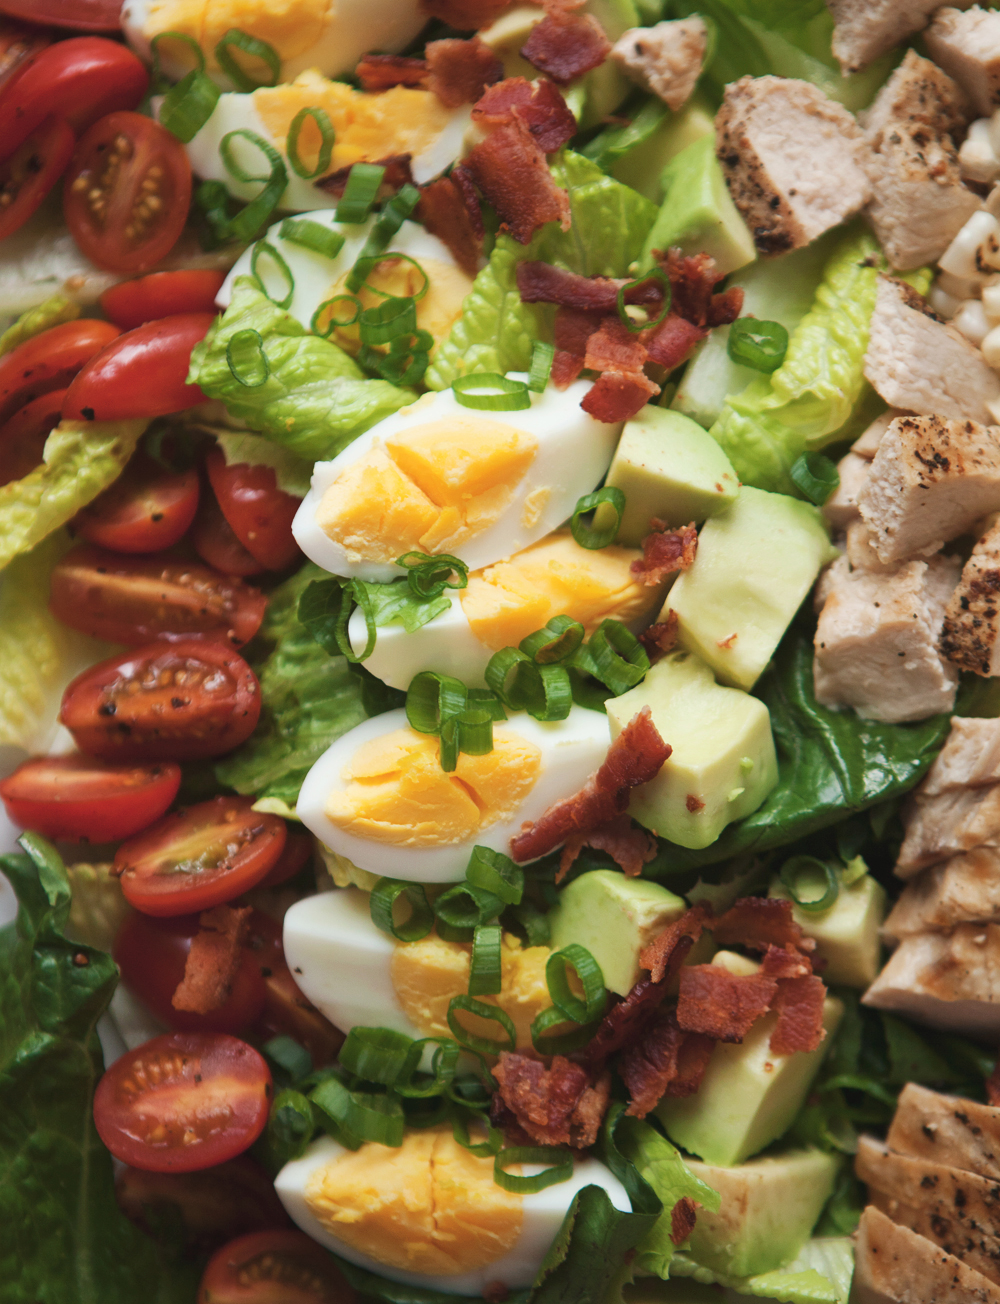 a-Better-Happier-St-Sebastian_Summer-Cobb-Salad-with-Green-Goddess-Dressing_127.jpg